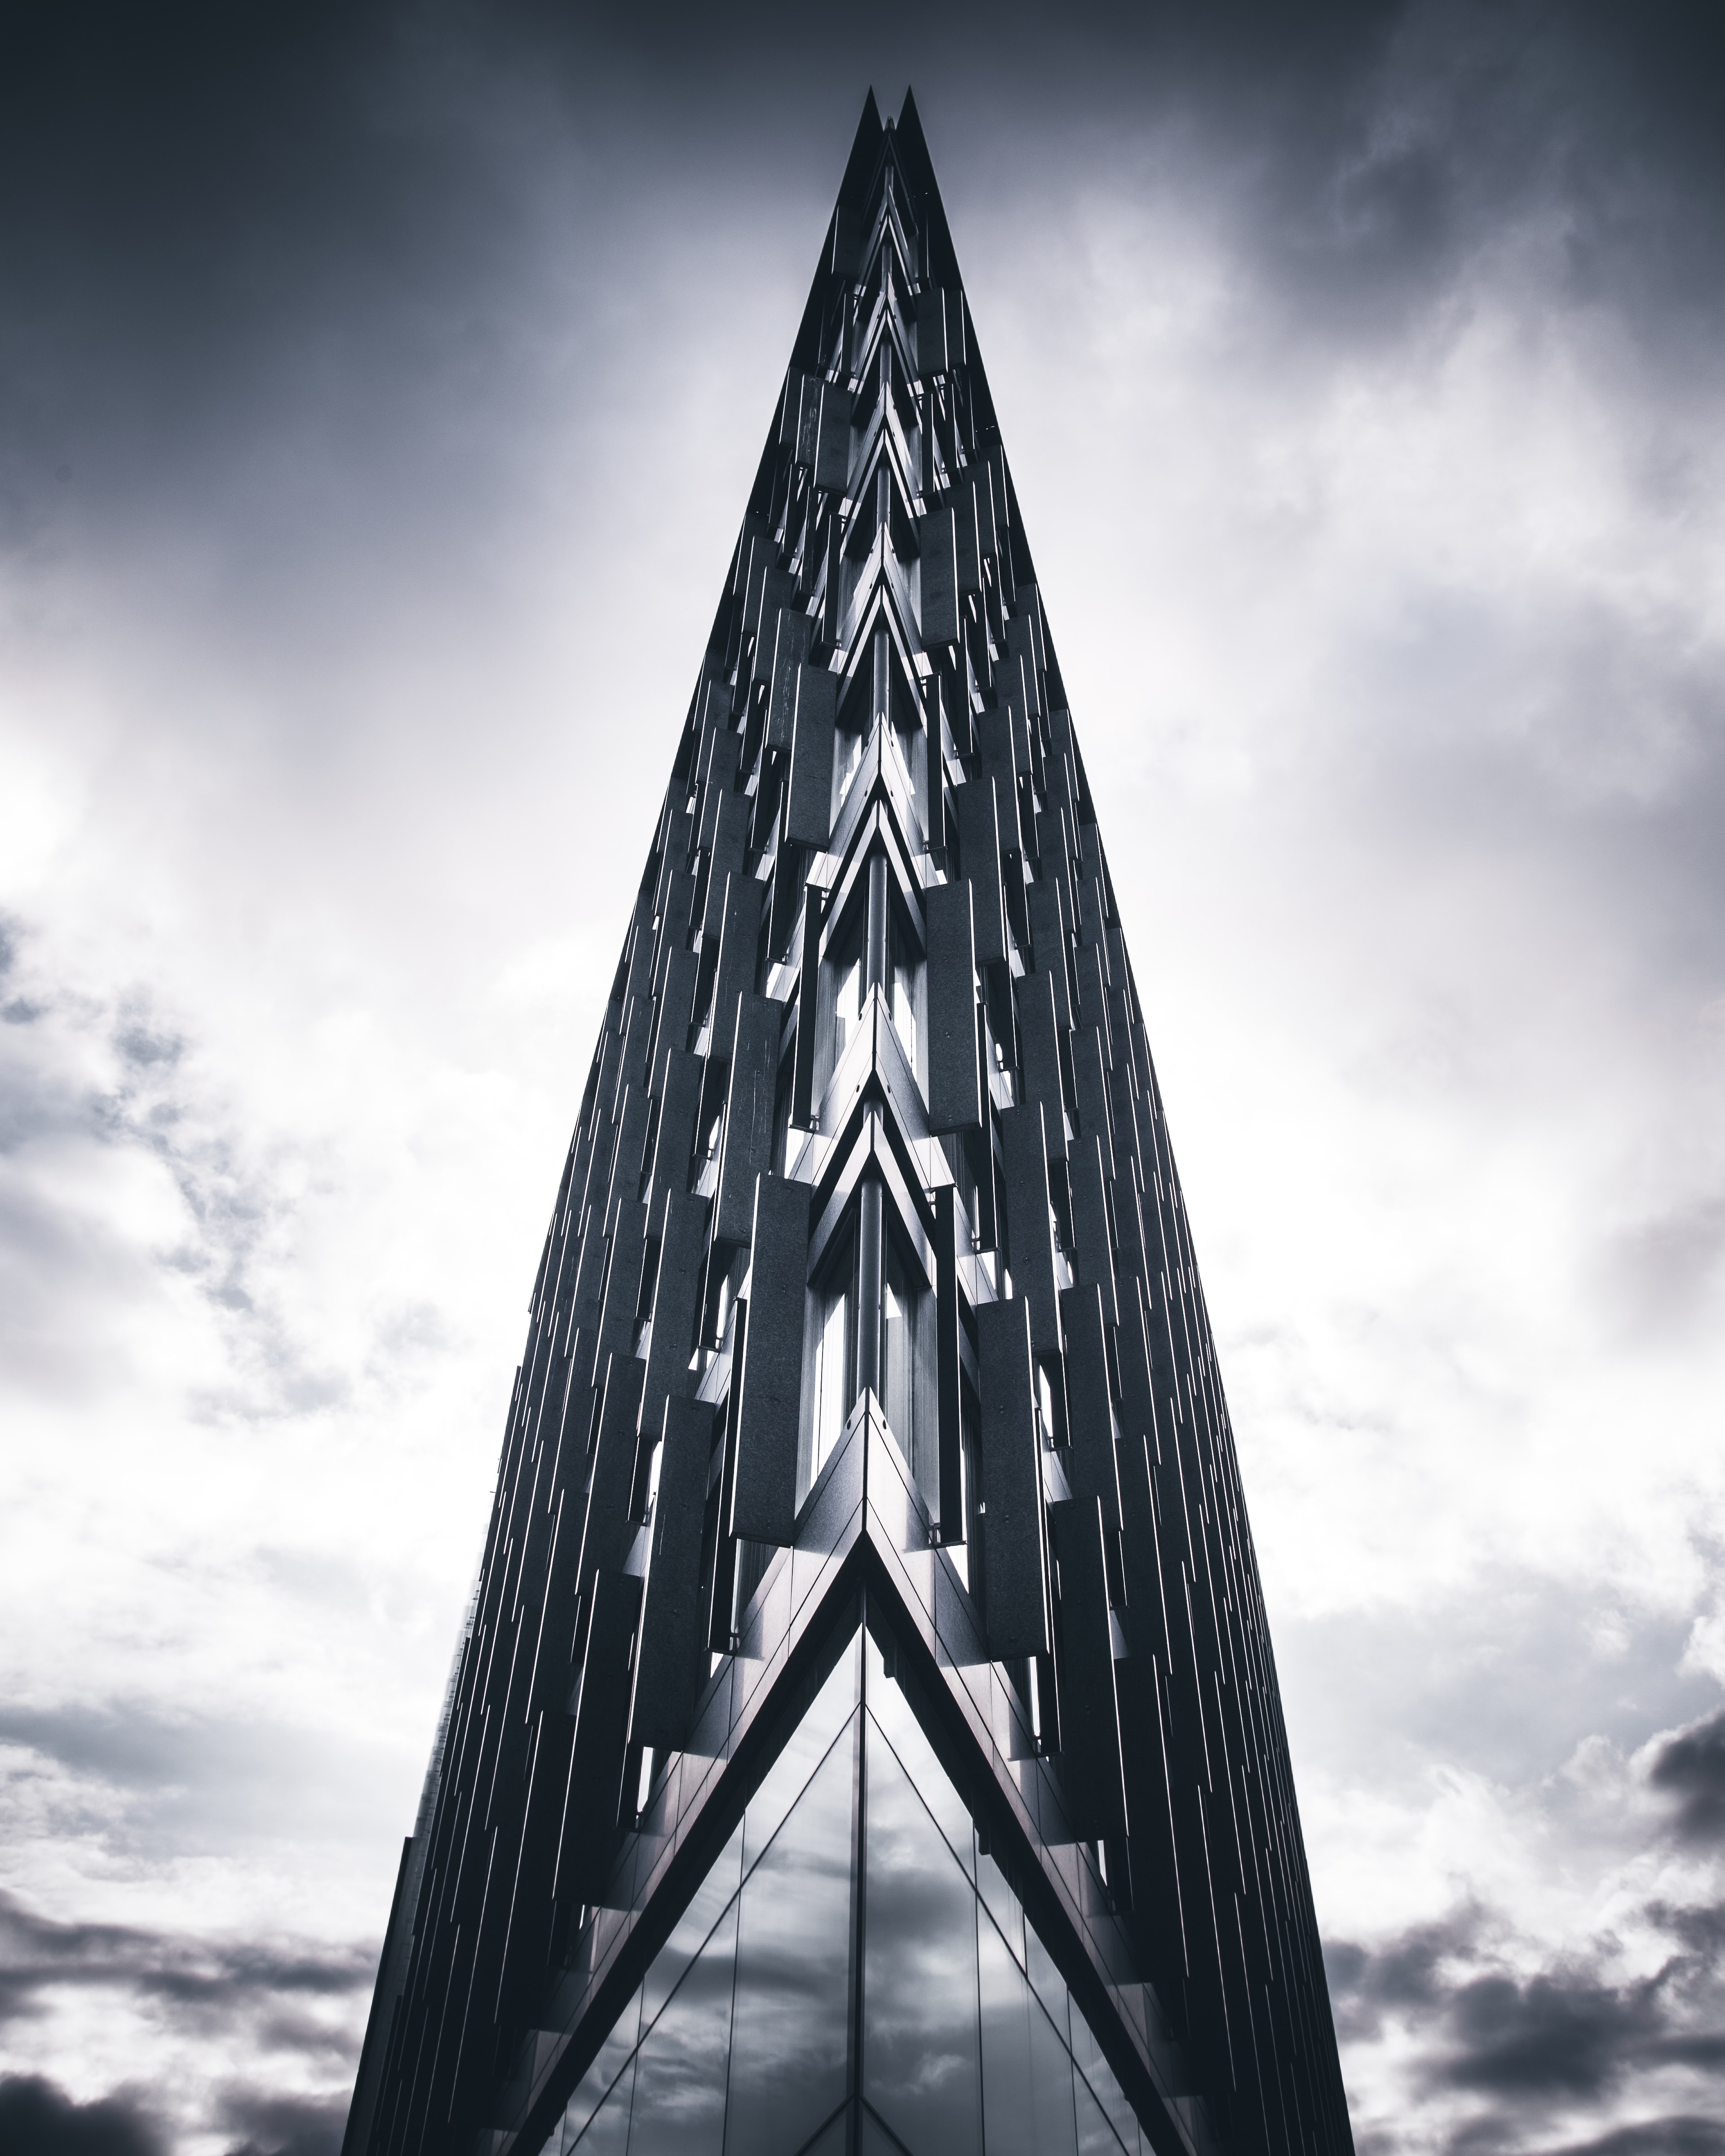 gray glass building under cloudy sky during daytime